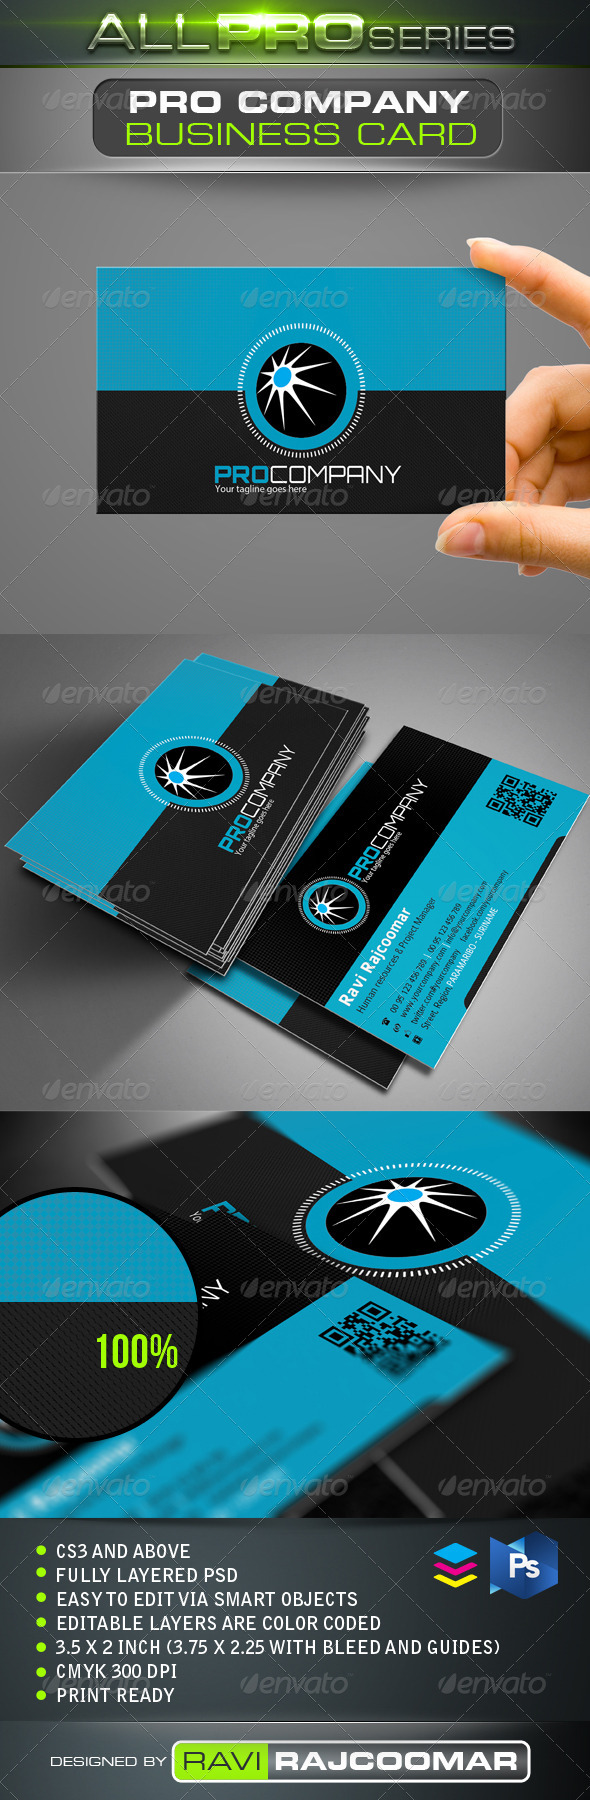 Pro Company Business Card - Corporate Business Cards